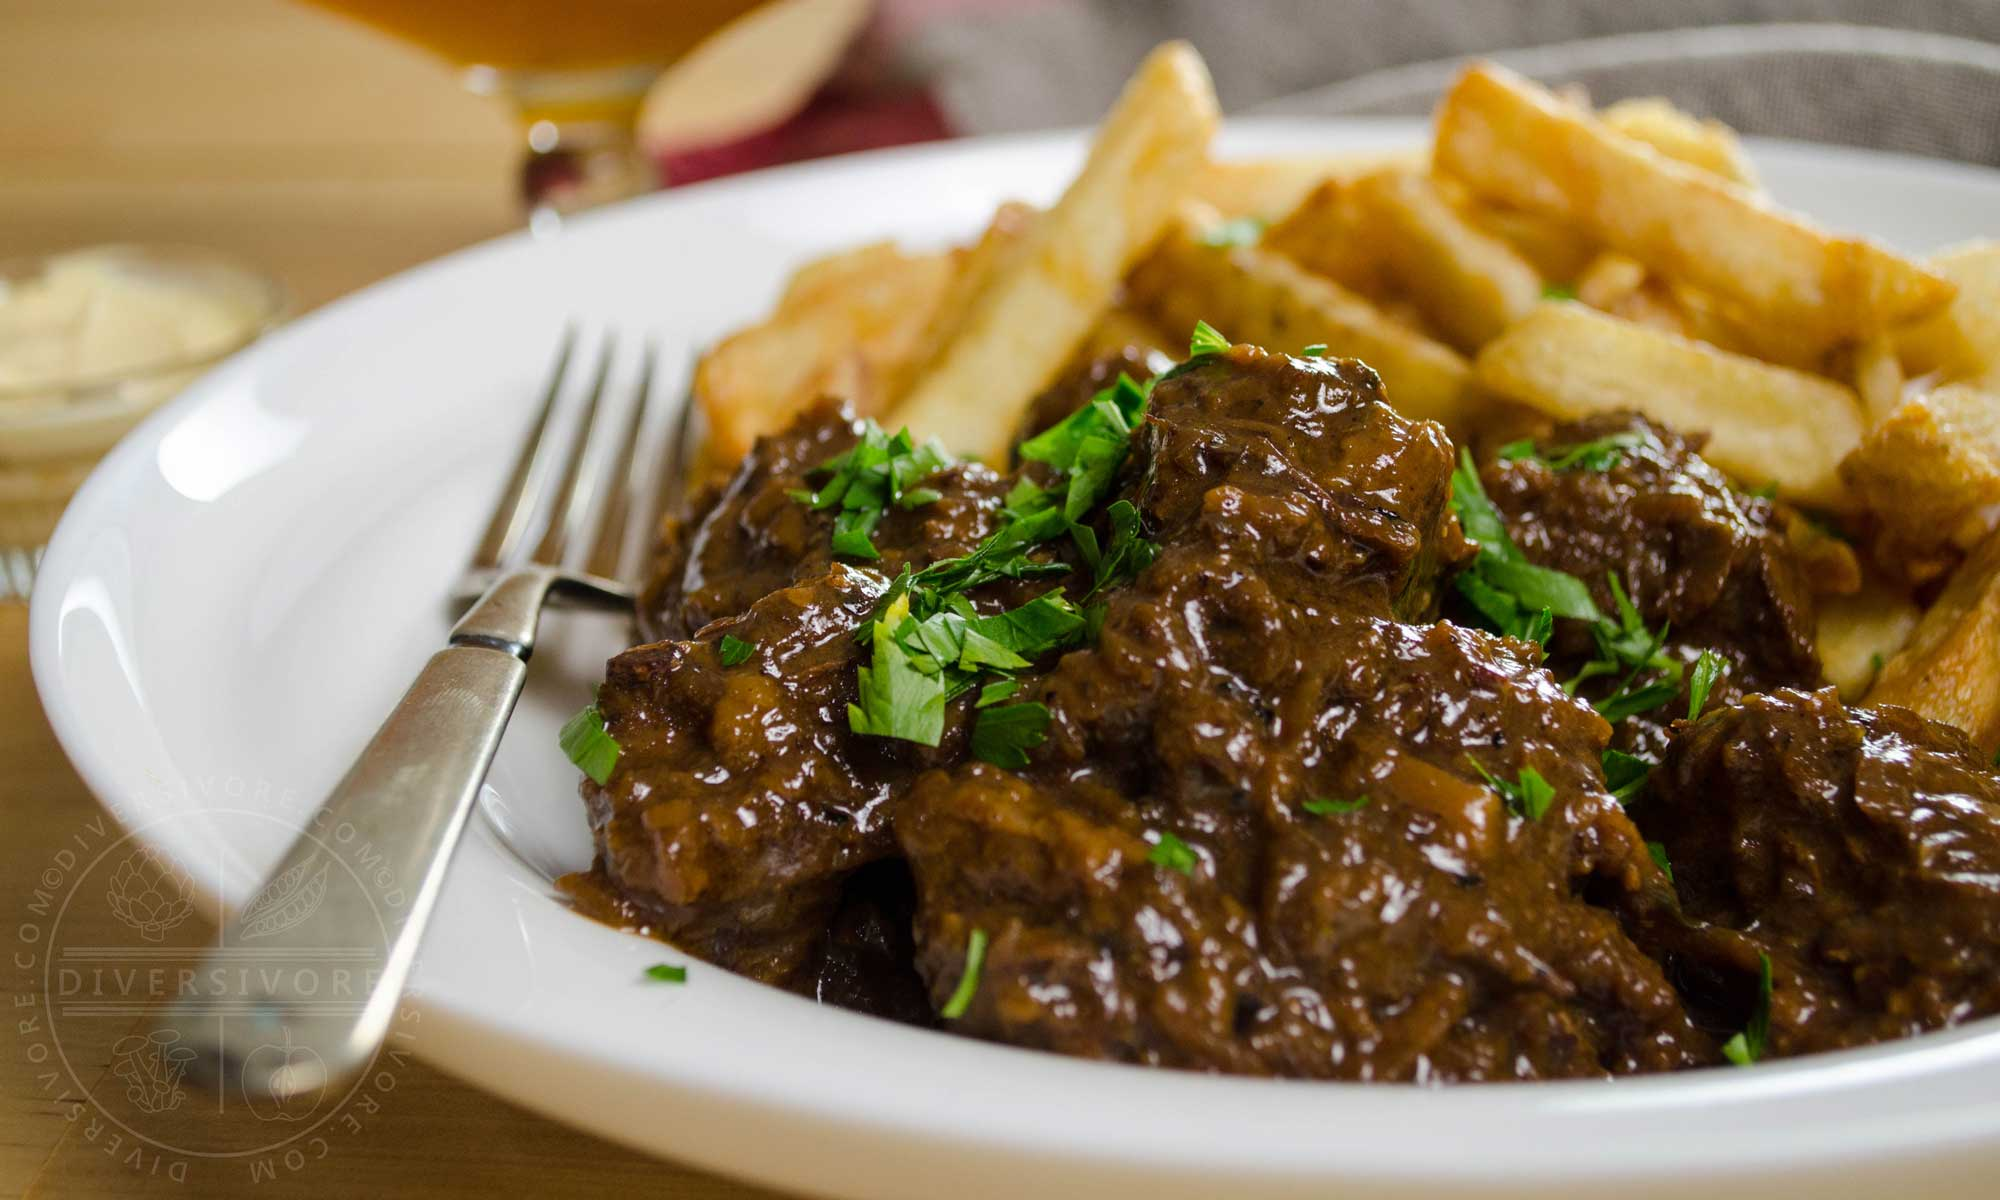 Carbonnade - Flemish Beef and Beer Stew in a white bowl with fries and a silver fork